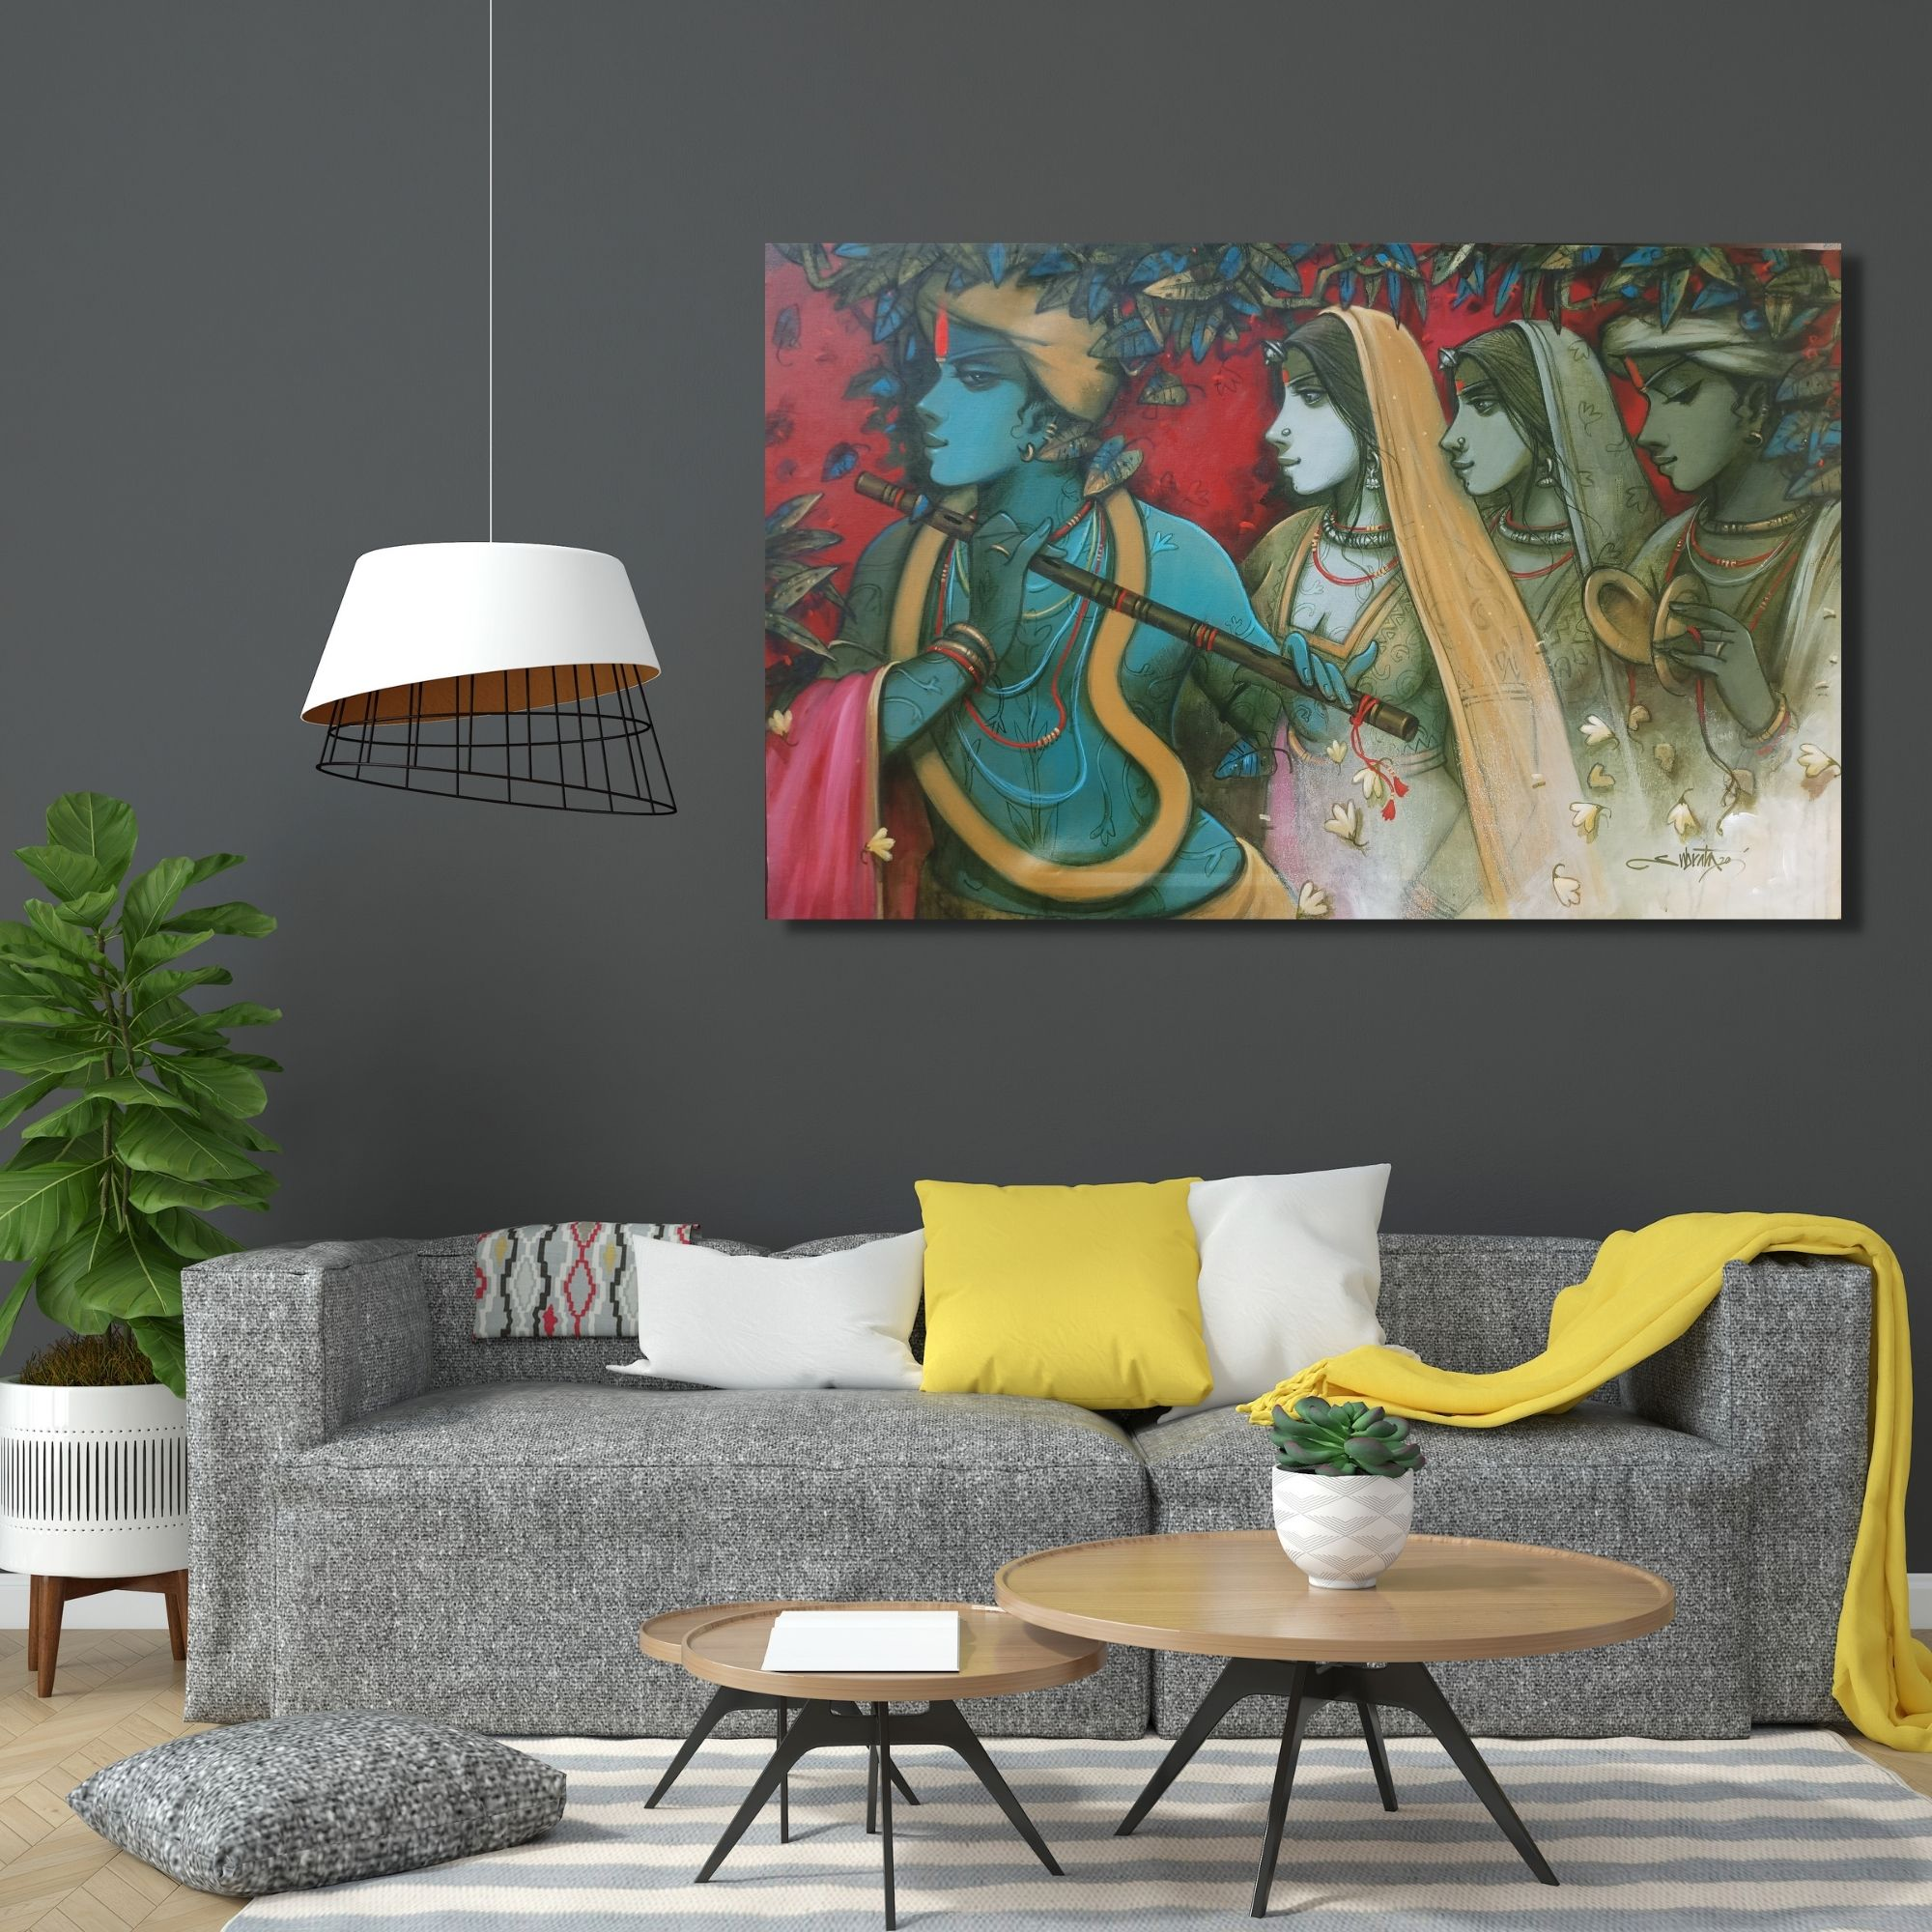 TUNE OF LOVE - 30x48 inches - Acrylic on canvas